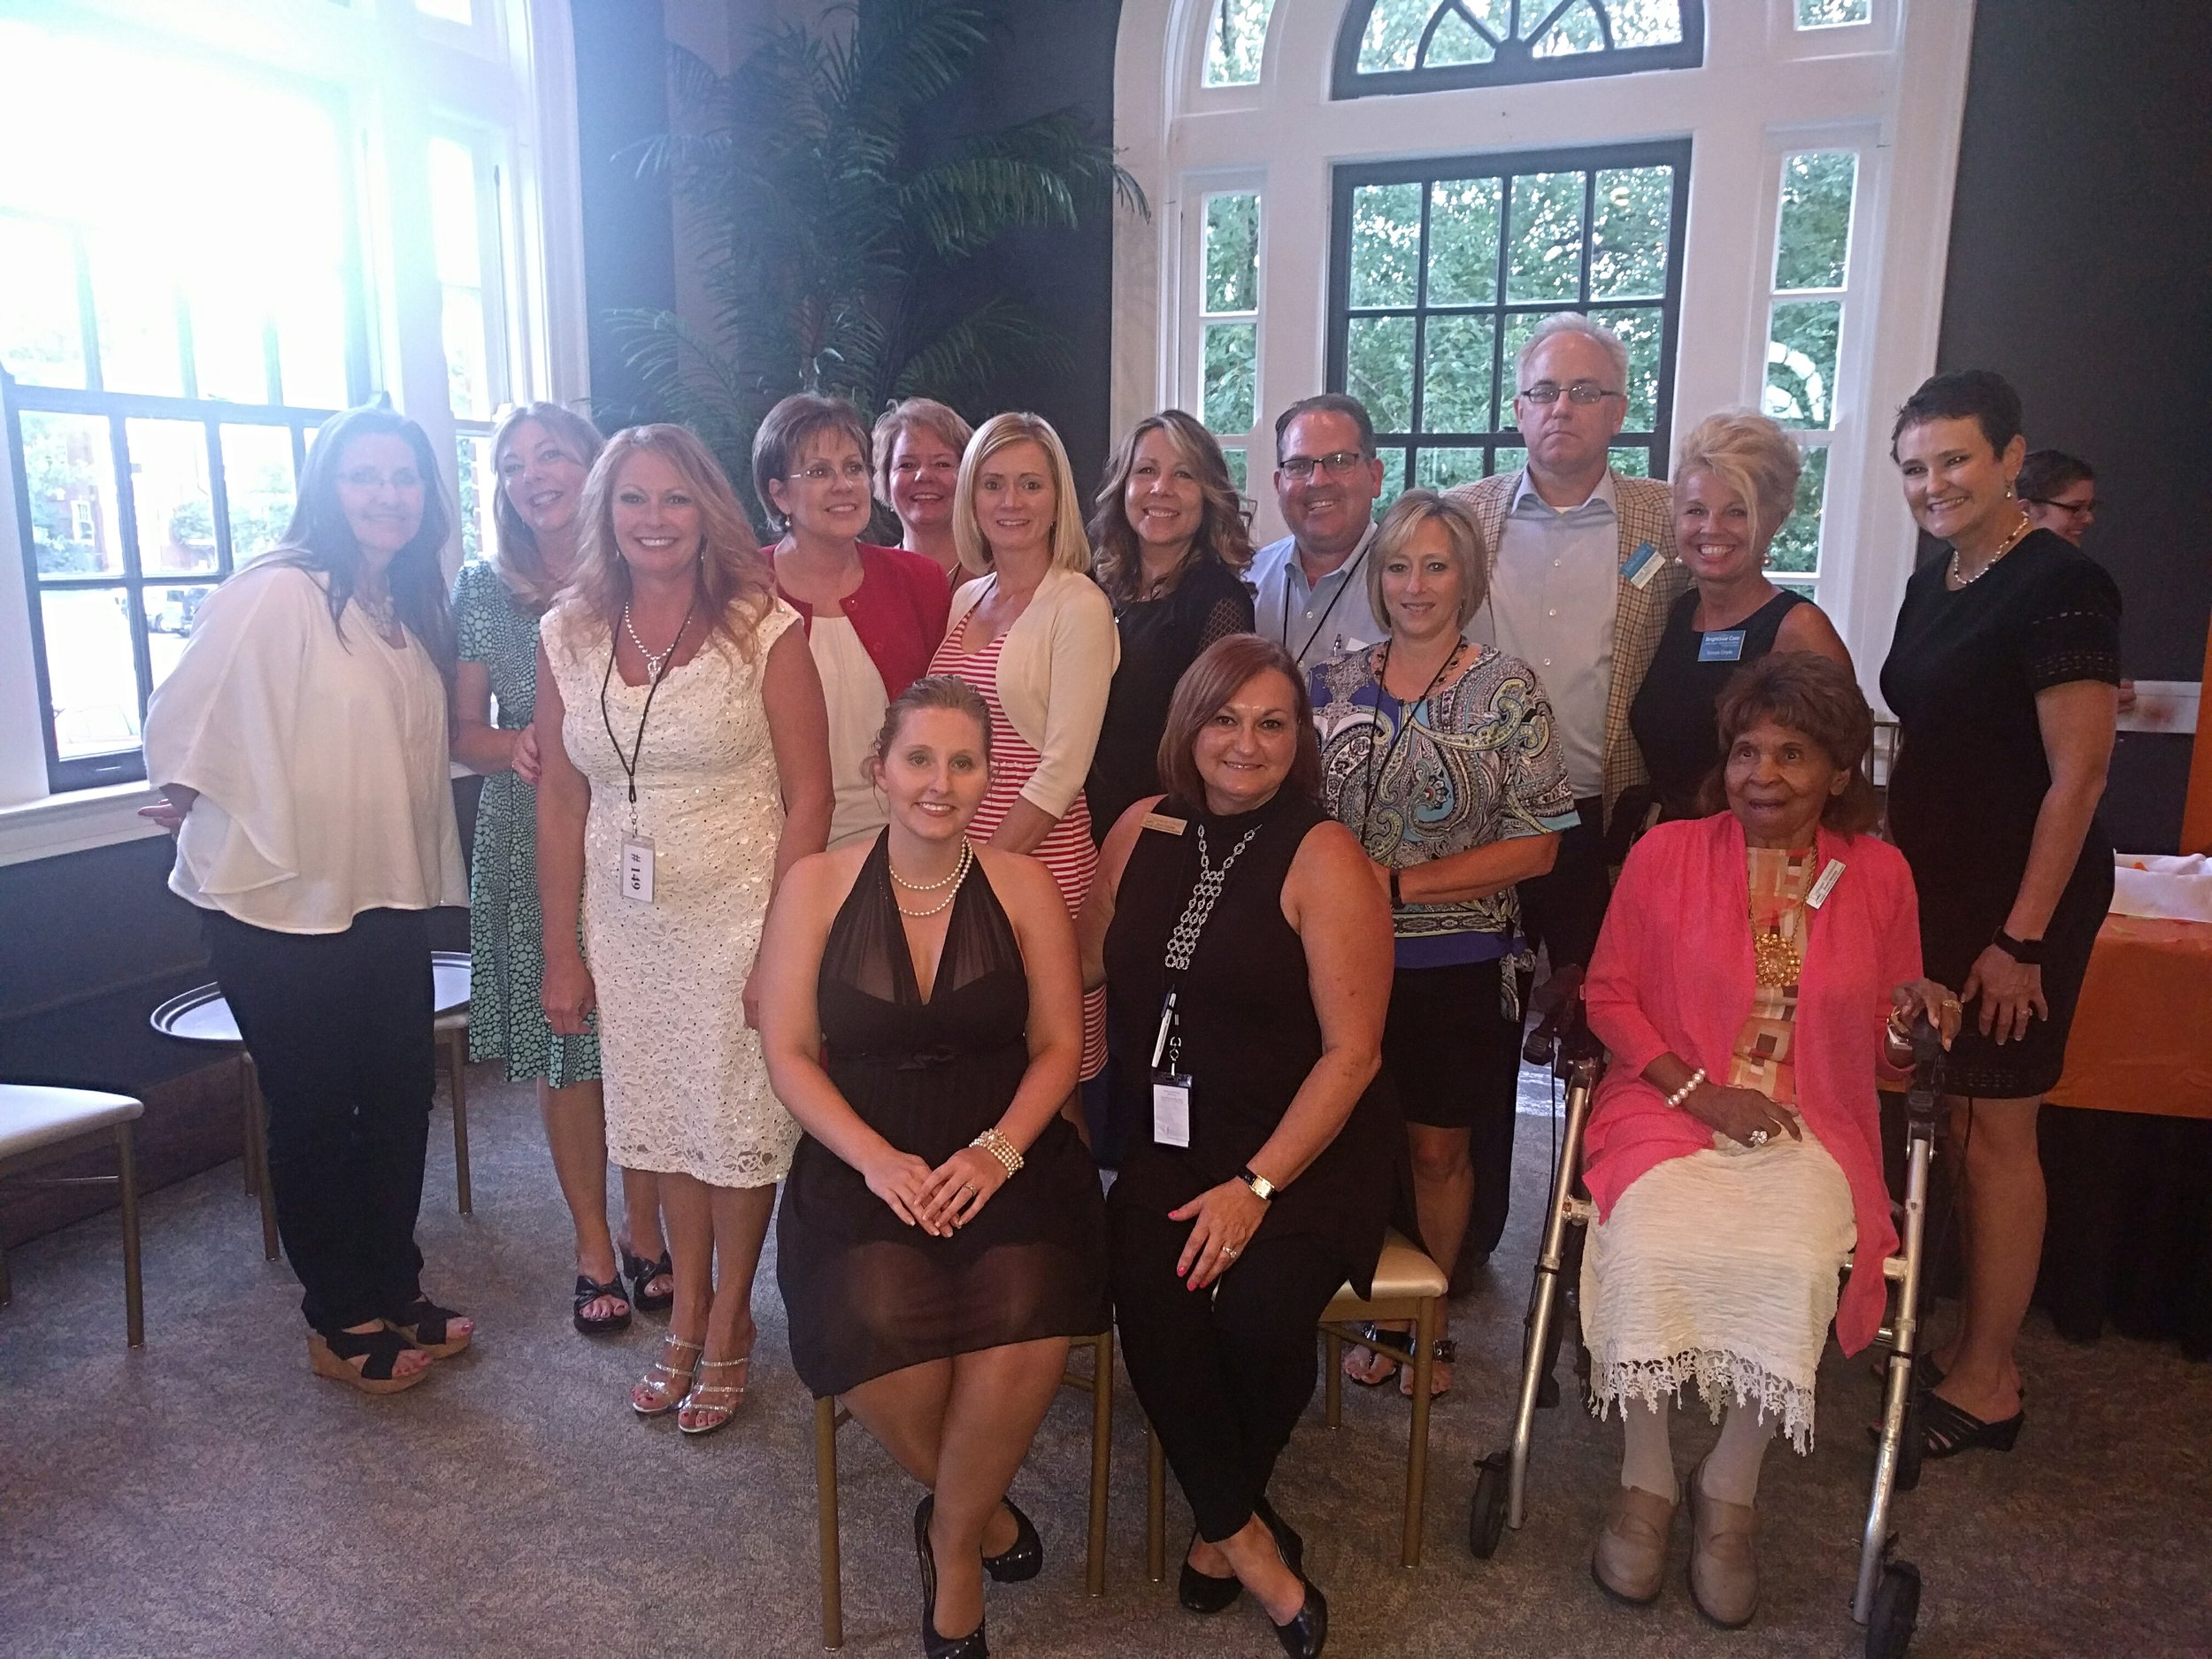 Pictured Left to Right. Starting with back row. Pam Jeseo (2015 Board Member), Carrie Orman (Executive Director), Tara Waters, Carolyn Franklin, Amy Walter, Valerie Goss, Yvonne Adkins (Board President) Mike Brown (Finance Director), Susan Lawson (Vice President), John Dotson, Teresa Doyle, Leah Phillips-Black,  Pictured Left to Right. Starting front row. Alisha Duvall (Charitable Gaming Director), Malana Eckert-CoutyGinger Drummond